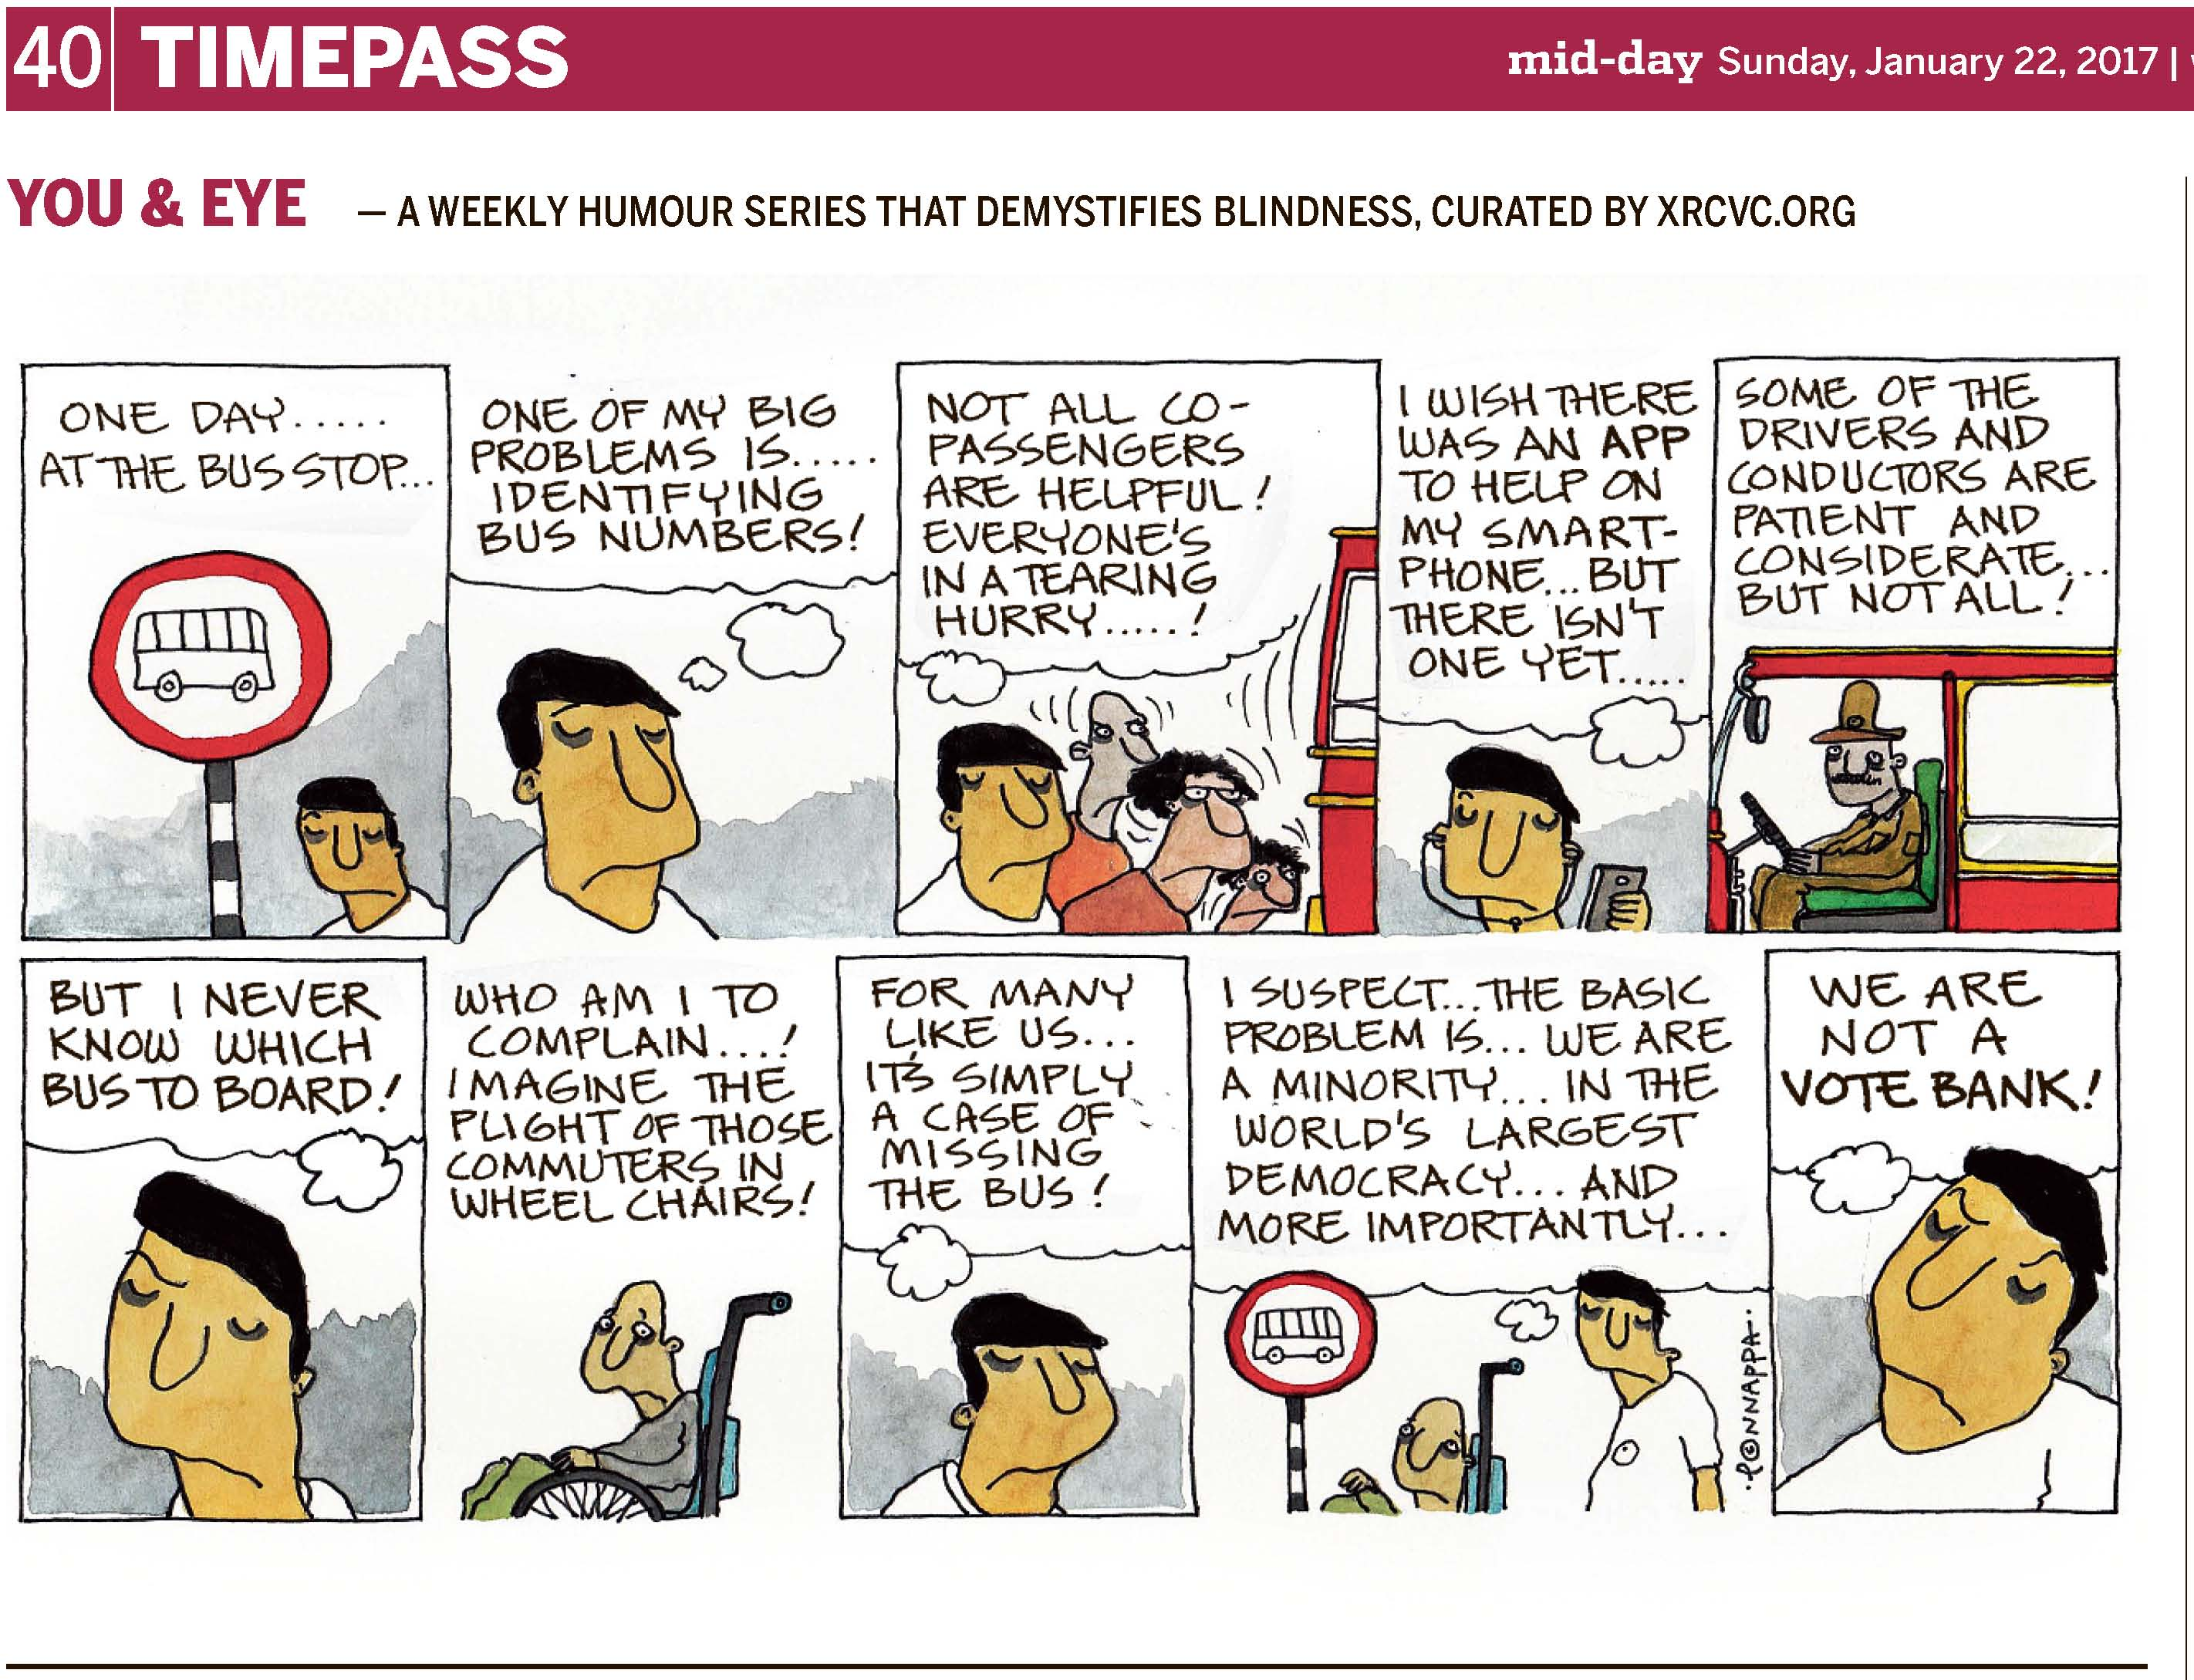 (top-left) 40 | TIMEPASS (top-right) mid-day Sunday, January 22, 2017 YOU & EYE – A WEEKLY HUMOUR SERIES THAT DEMYSTIFIES BLINDNESS, CURATED BY XRCVC.ORG Image description: A cartoon strip with 10 frames… Frame 1: (BG is next to a pole with alternate black and white horizontal lines across. Atop the pole, is a circular white signage with a thick red border and the side-view of a bus drawn in black.) Text: One day… at the bus-stop… Frame 2: (A close-up of a disappointed-looking BG, with a thought bubble above which shows him thinking) One of my big problems is… identifying bus numbers! Frame 3: (3 persons of varying heights seem to be rushing towards what appears to be the back of a red bus. A thought bubble shows BG thinking.) Not all co-passengers are helpful! Everyone's in a tearing hurry…! Frame 4: (BG is wearing earphones and holding a mobile in his left hand. A thought bubble shows him thinking.) I wish there was an app to help on my smartphone… but there isn't one yet… Frame 5: